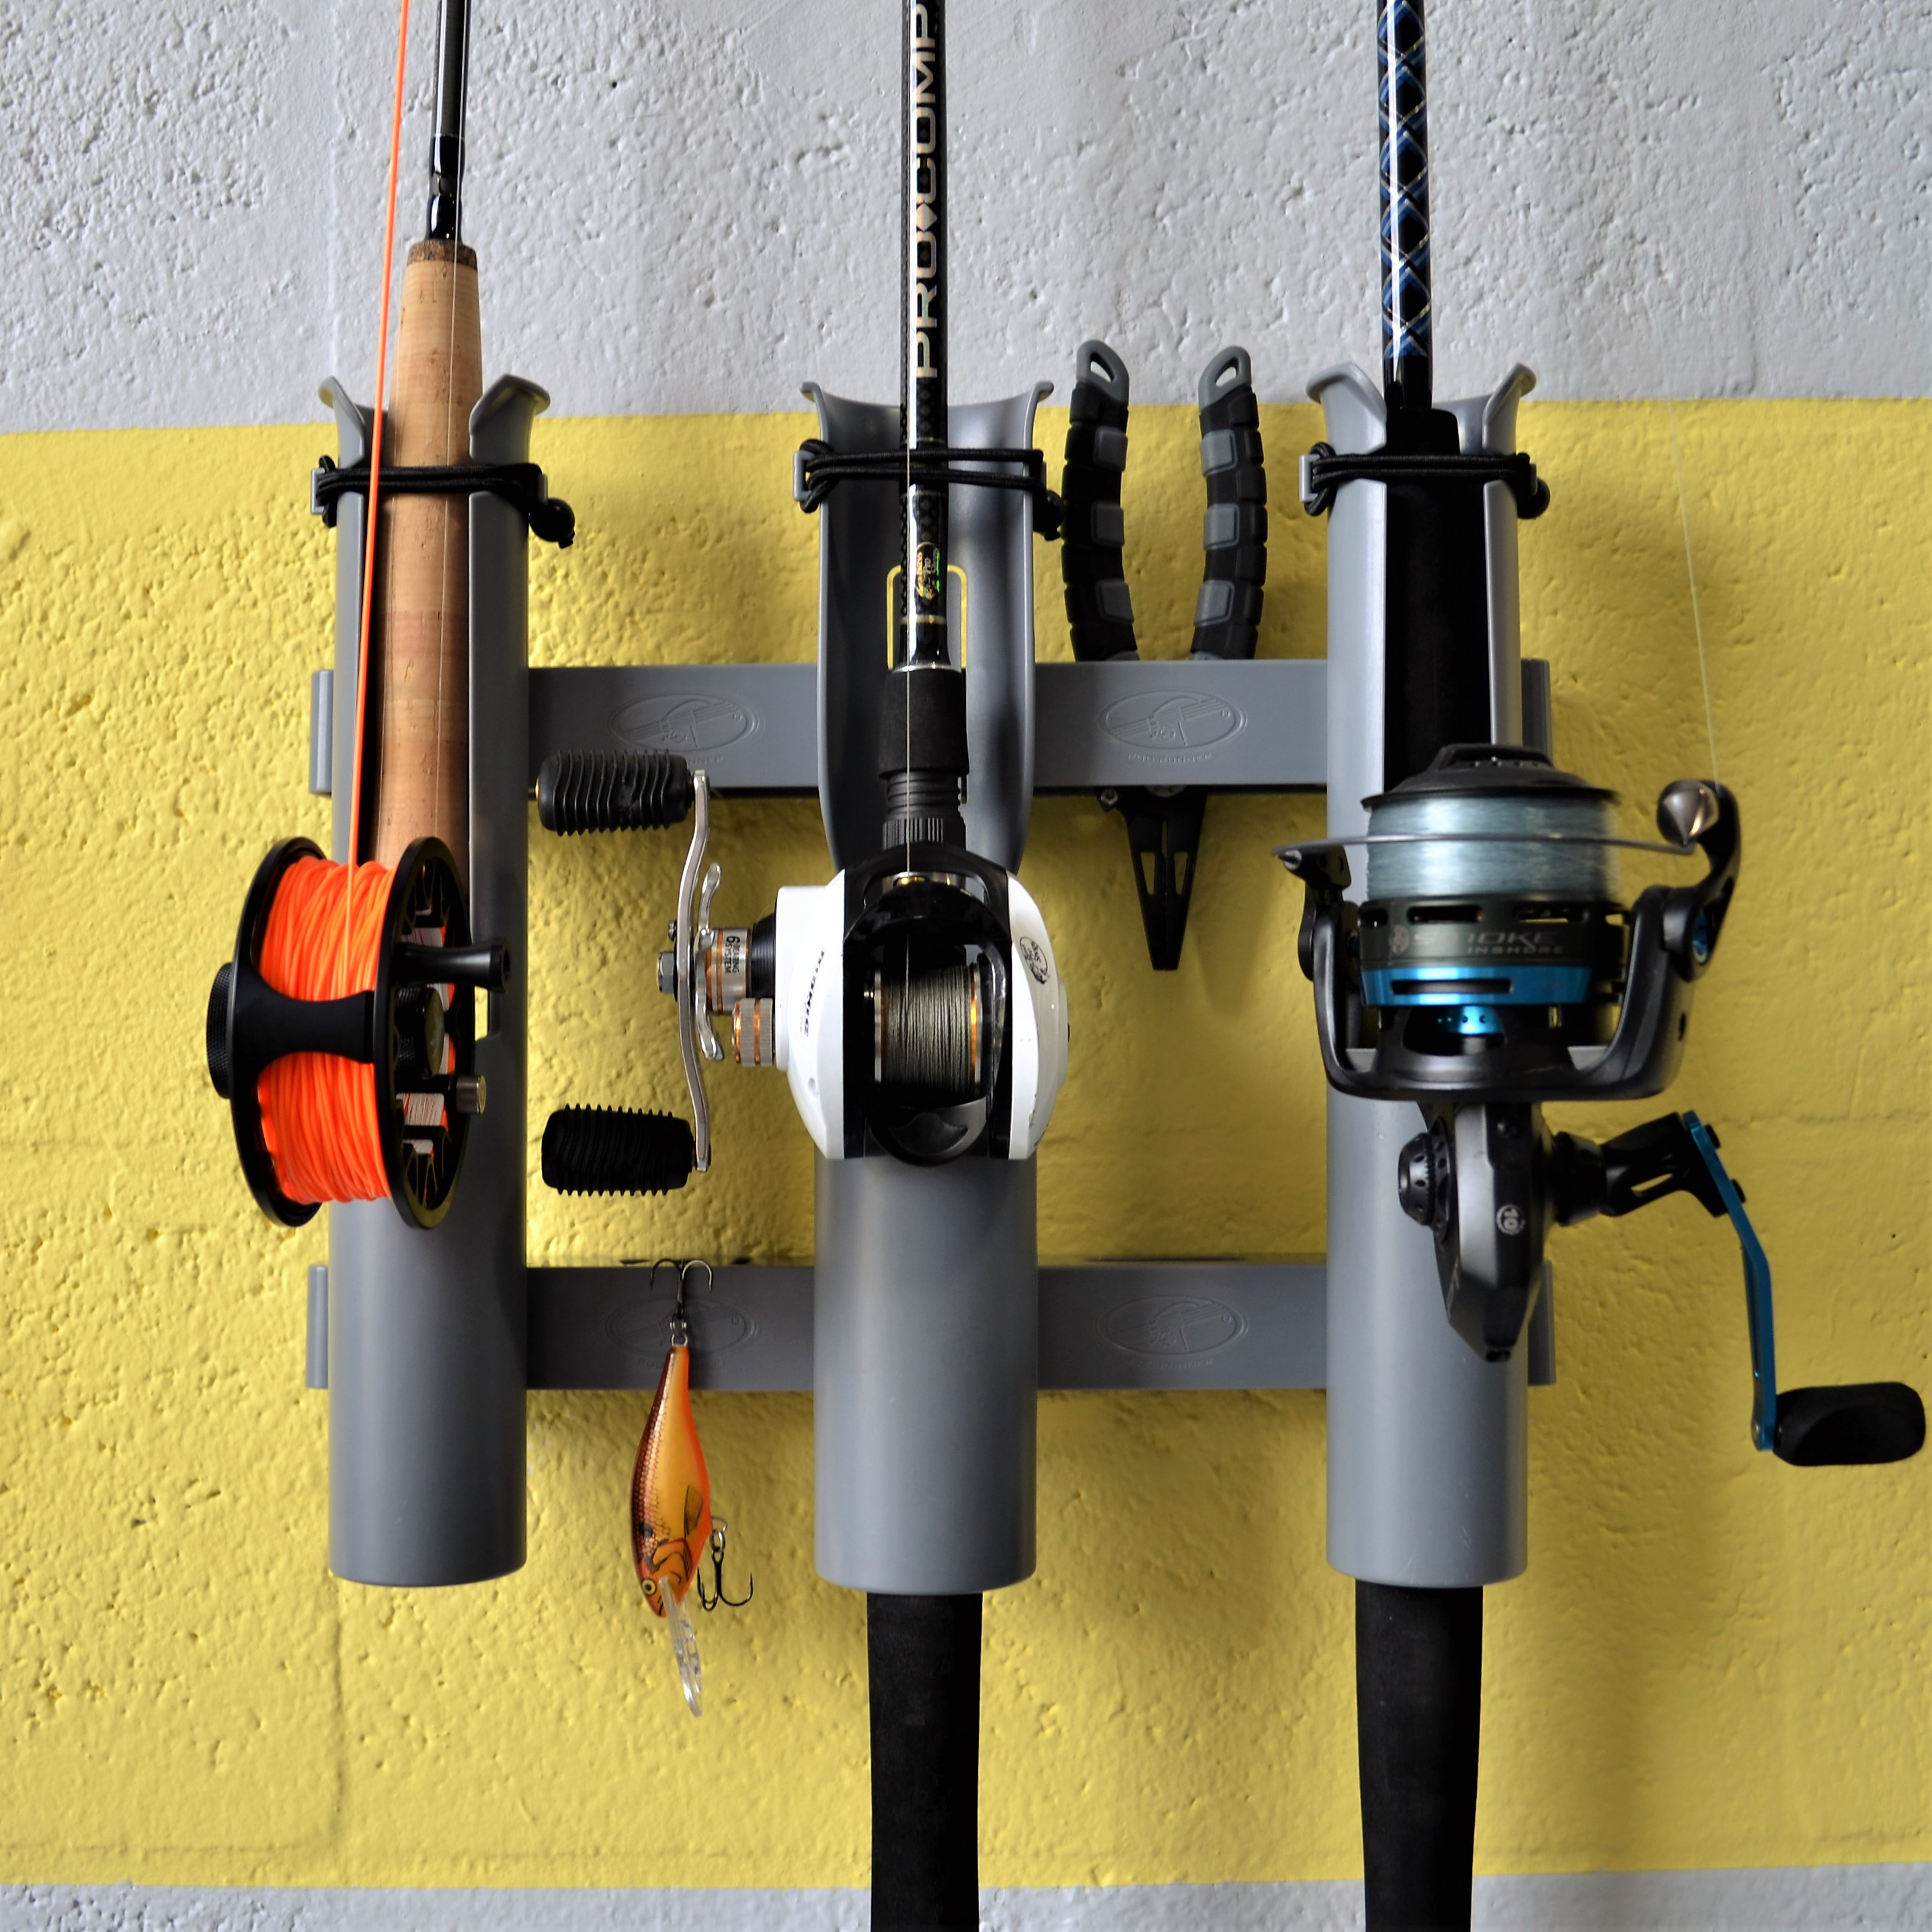 Major League Fishing Holiday Gift Guide